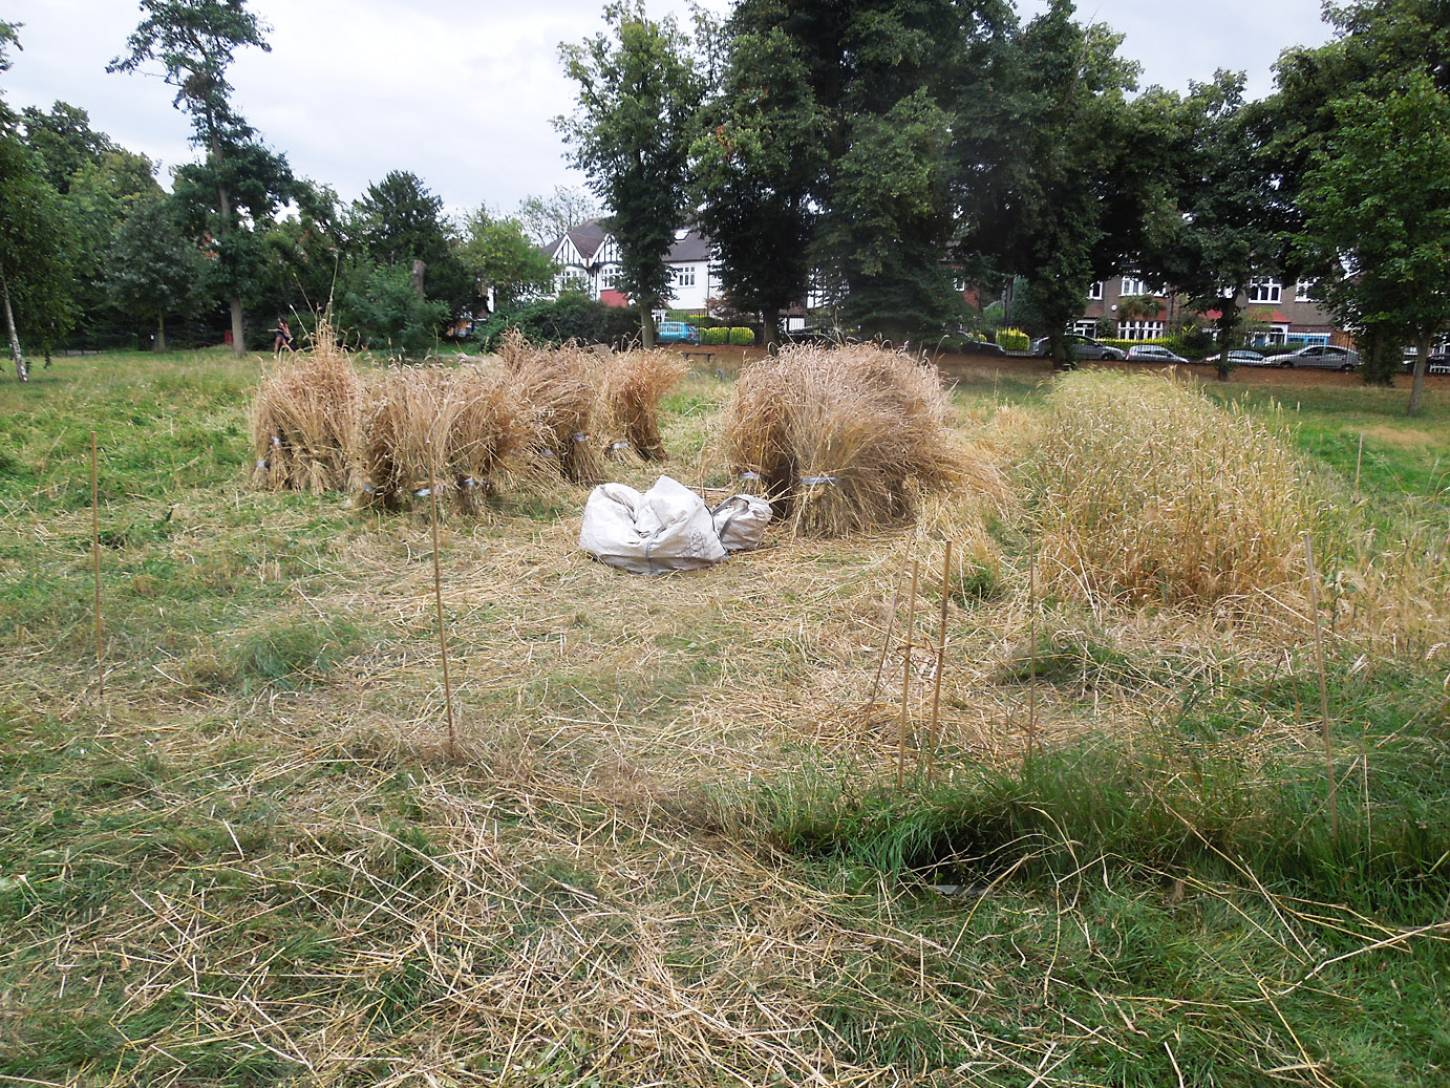 Ruskin Park harvest - 7:08pm&nbsp;8<sup>th</sup>&nbsp;Aug.&nbsp;'16